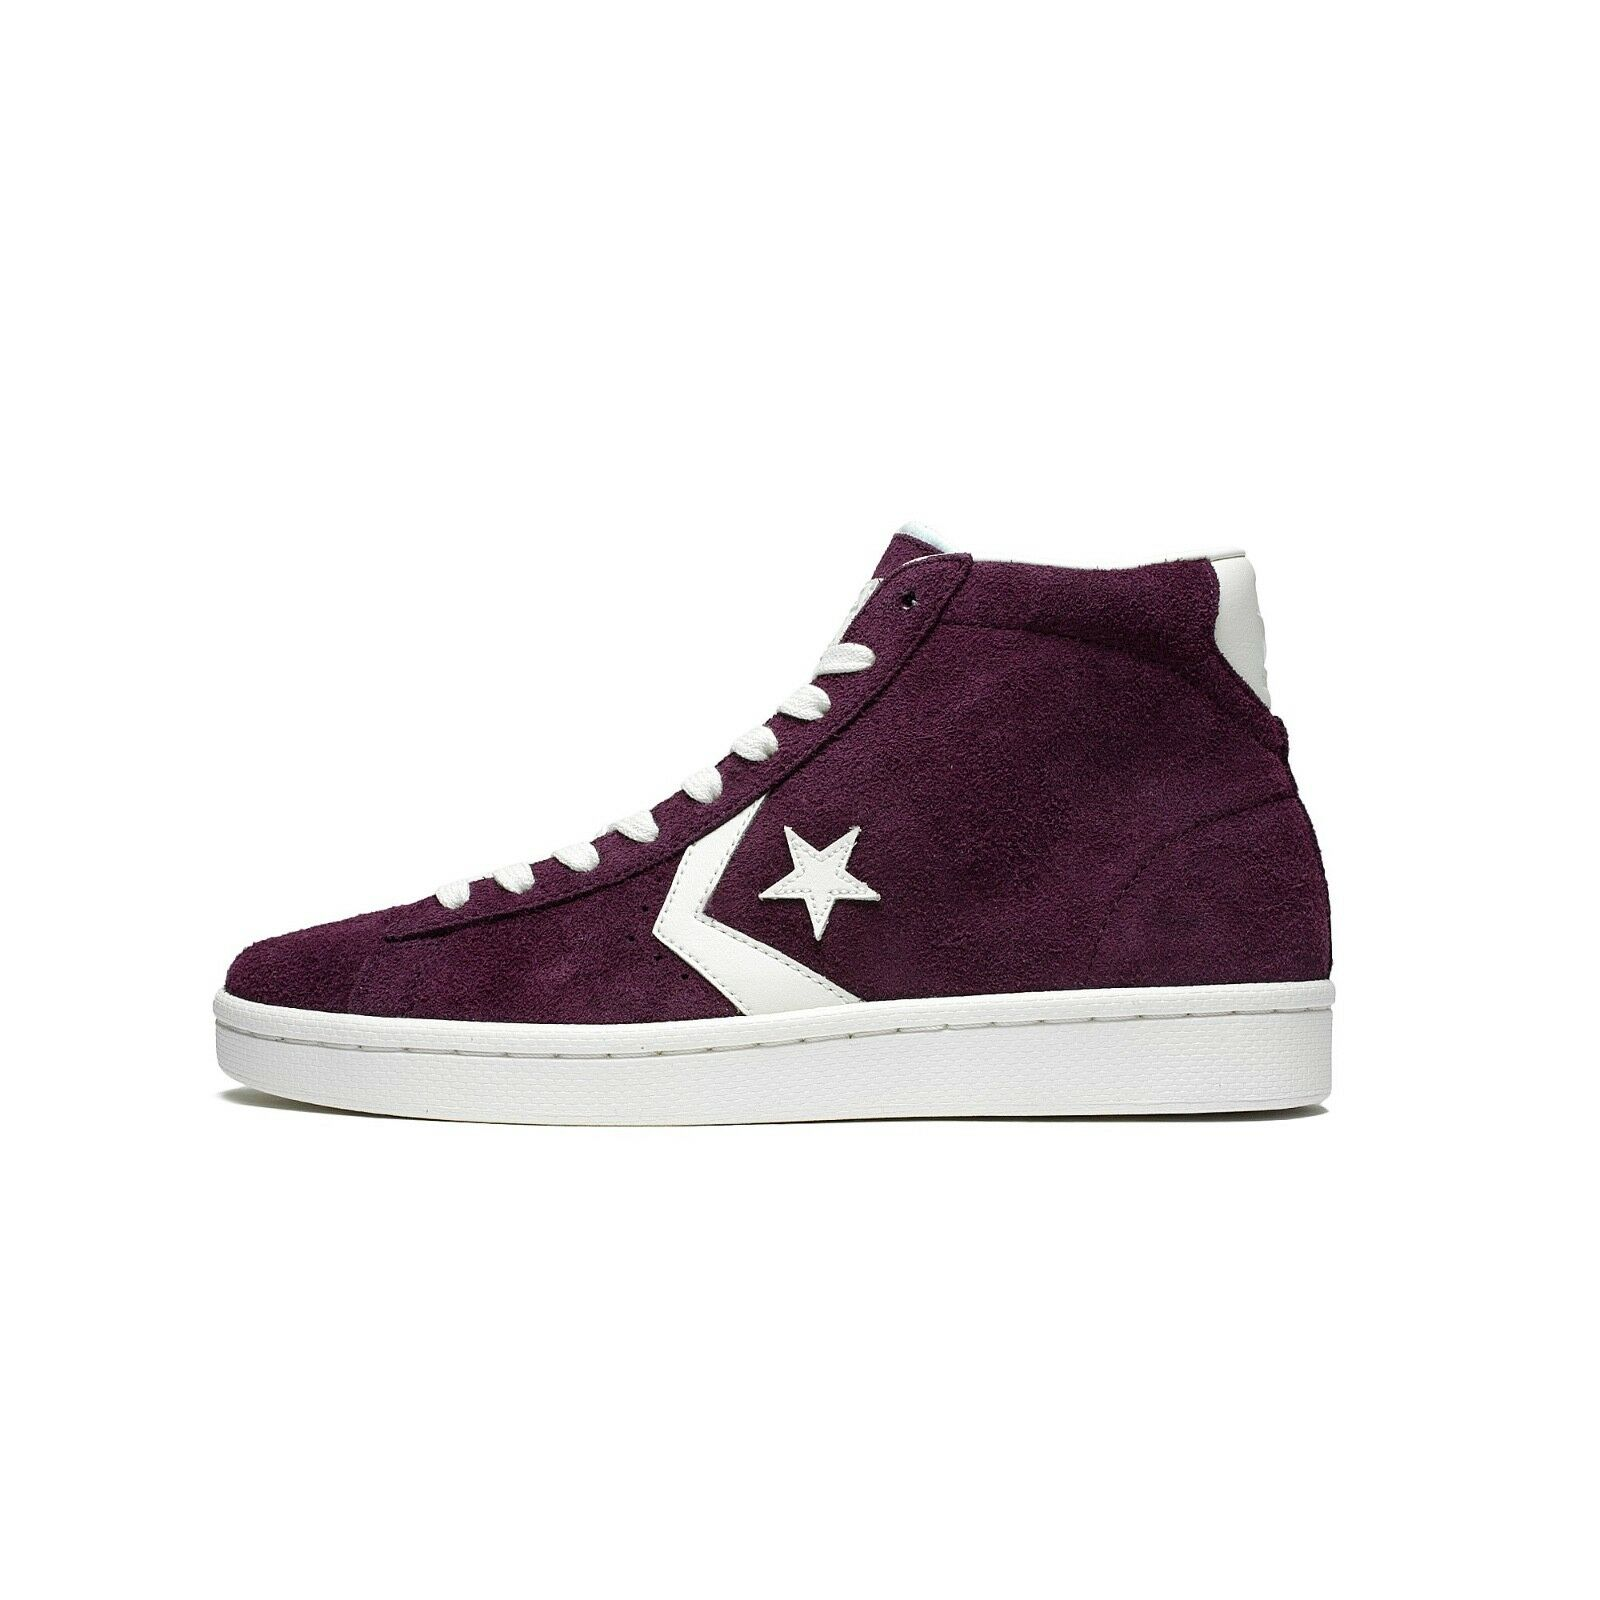 Men's Converse Pro Leather Mid